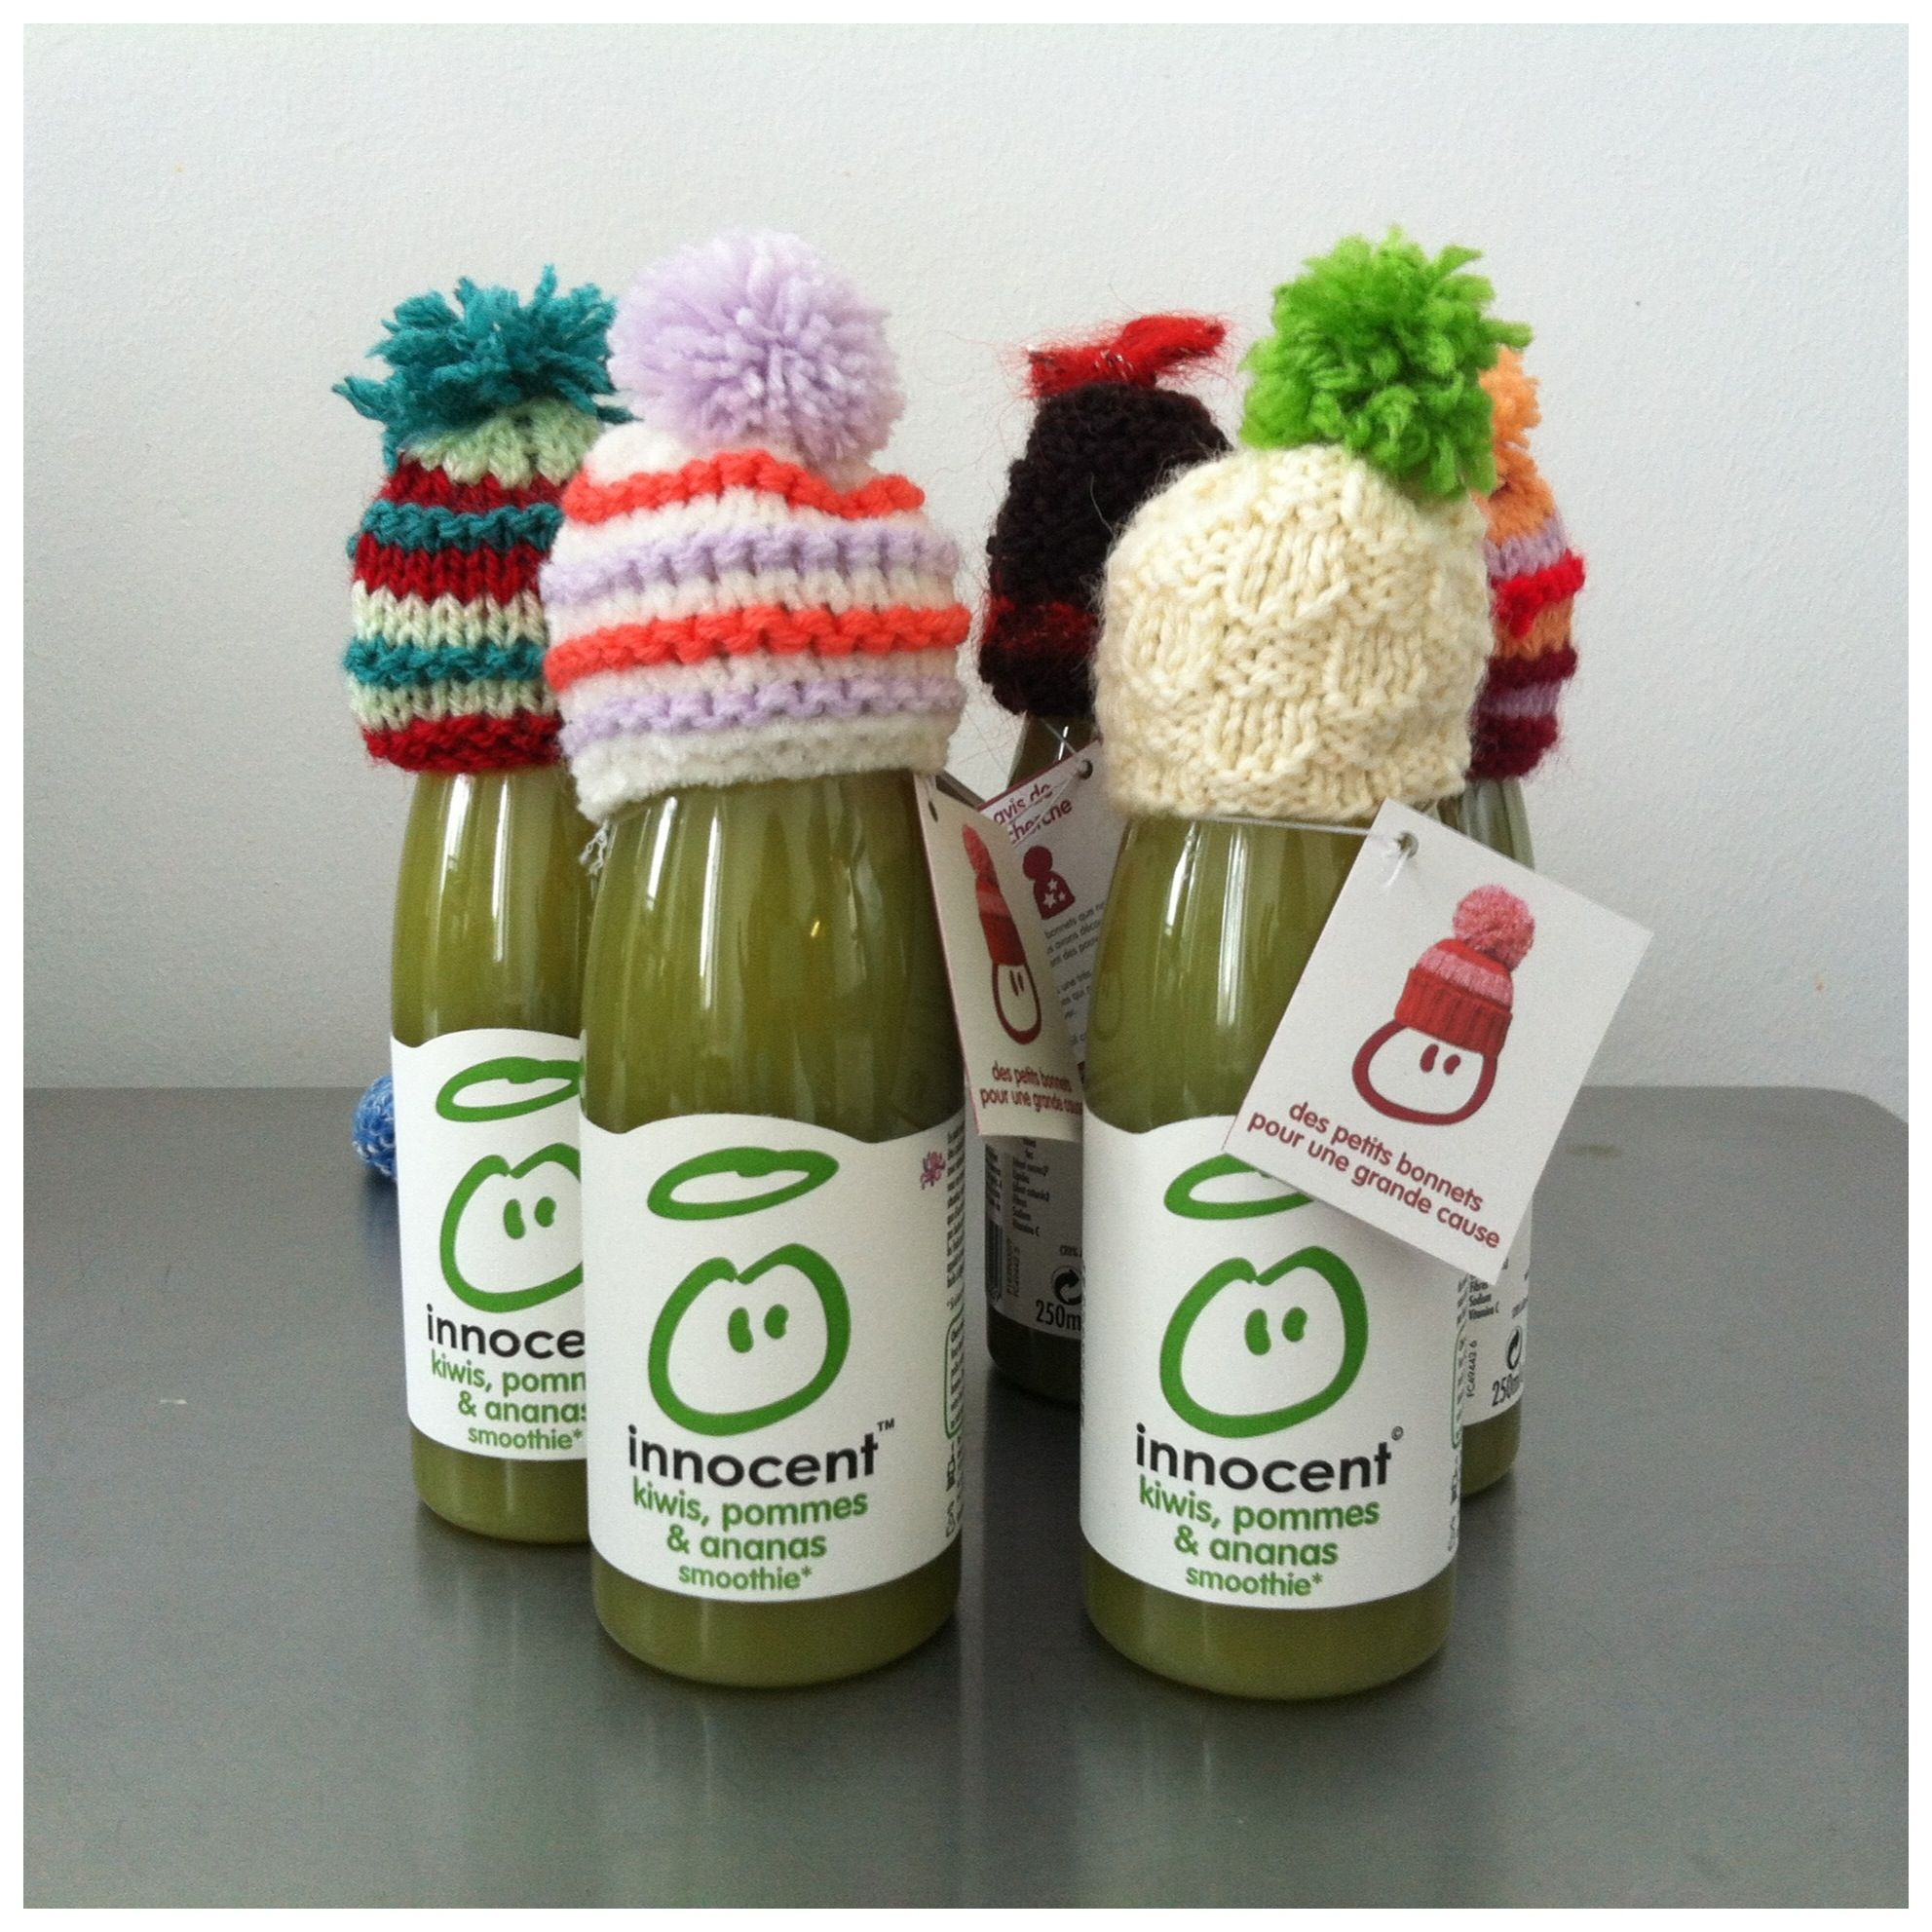 knitting campaign innocent smoothie http//www.innocent.fr/mets,